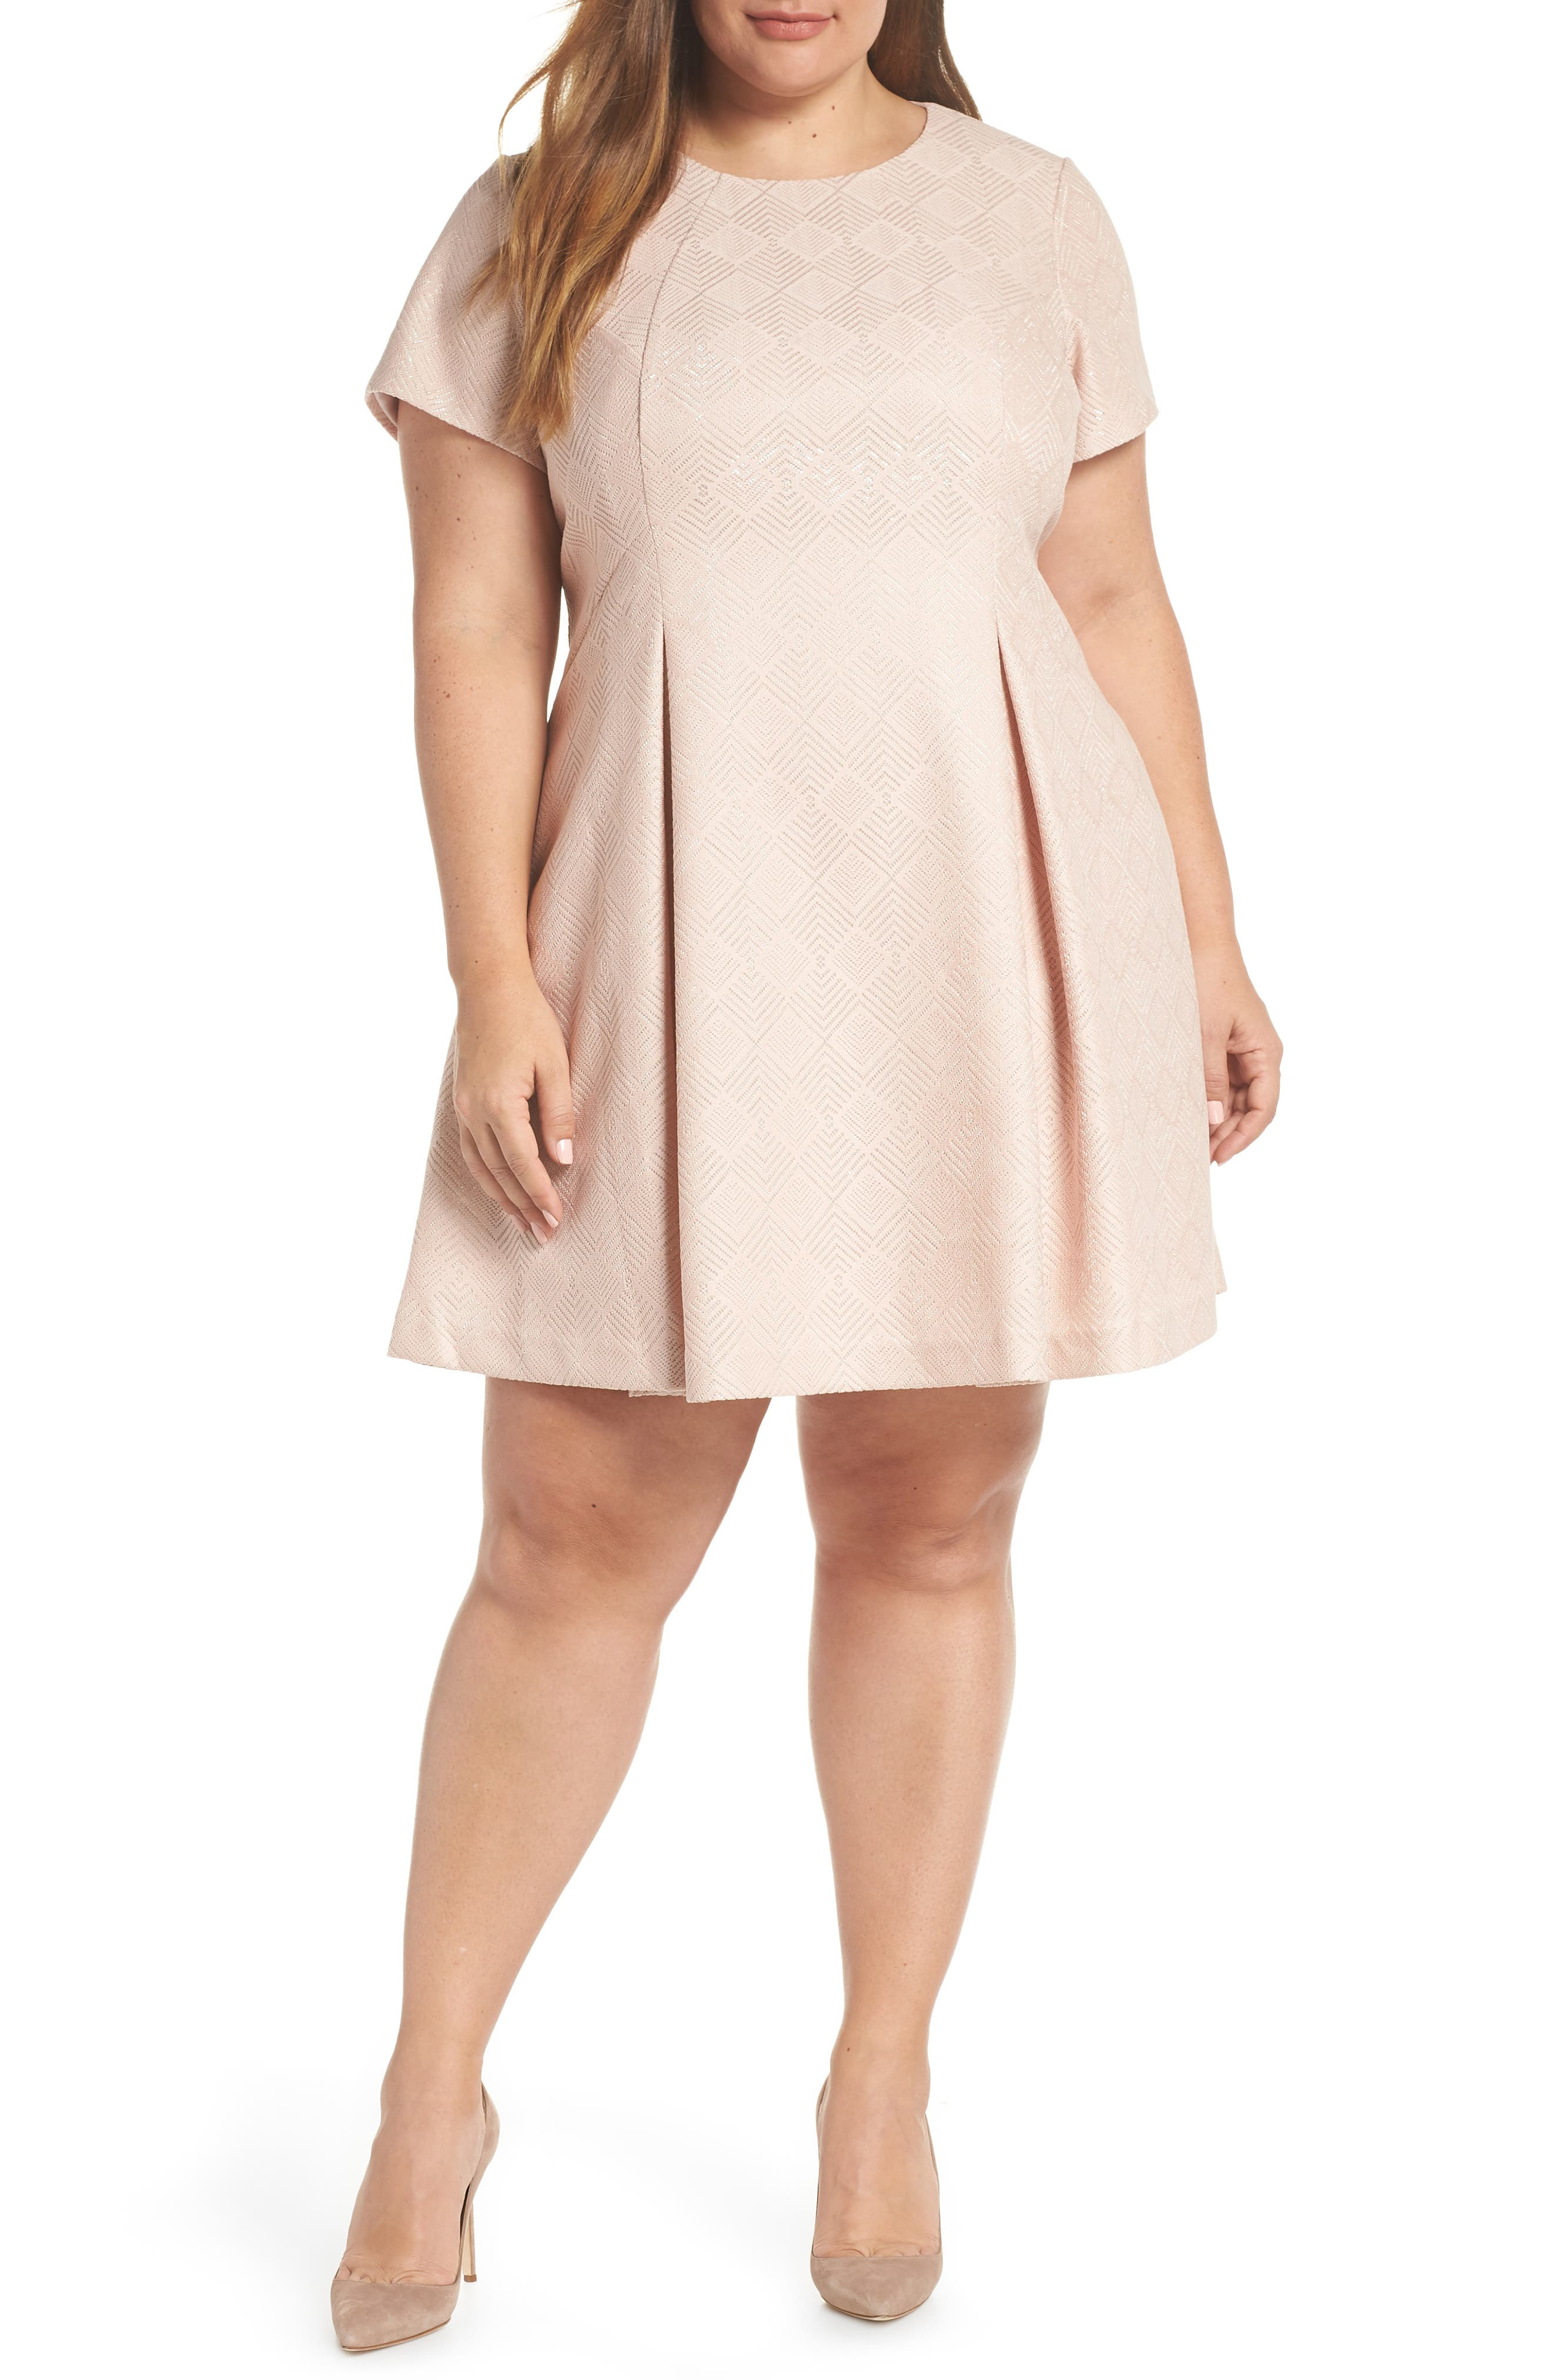 Plus Size Vince Camuto Bonded Lace Fit & Flare Dress, Pink